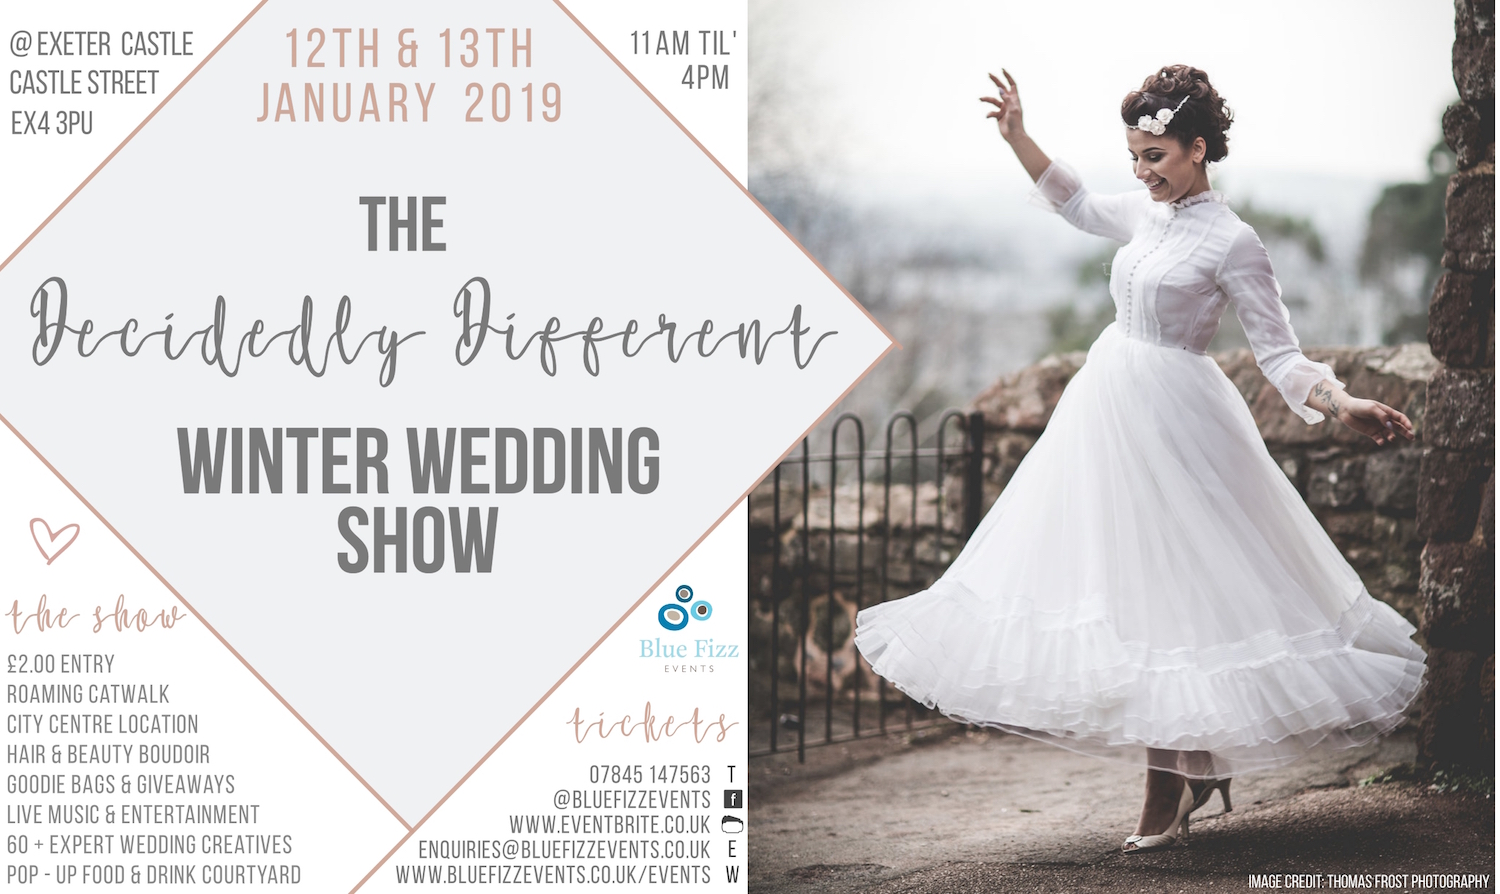 The decidedly different winter wedding show